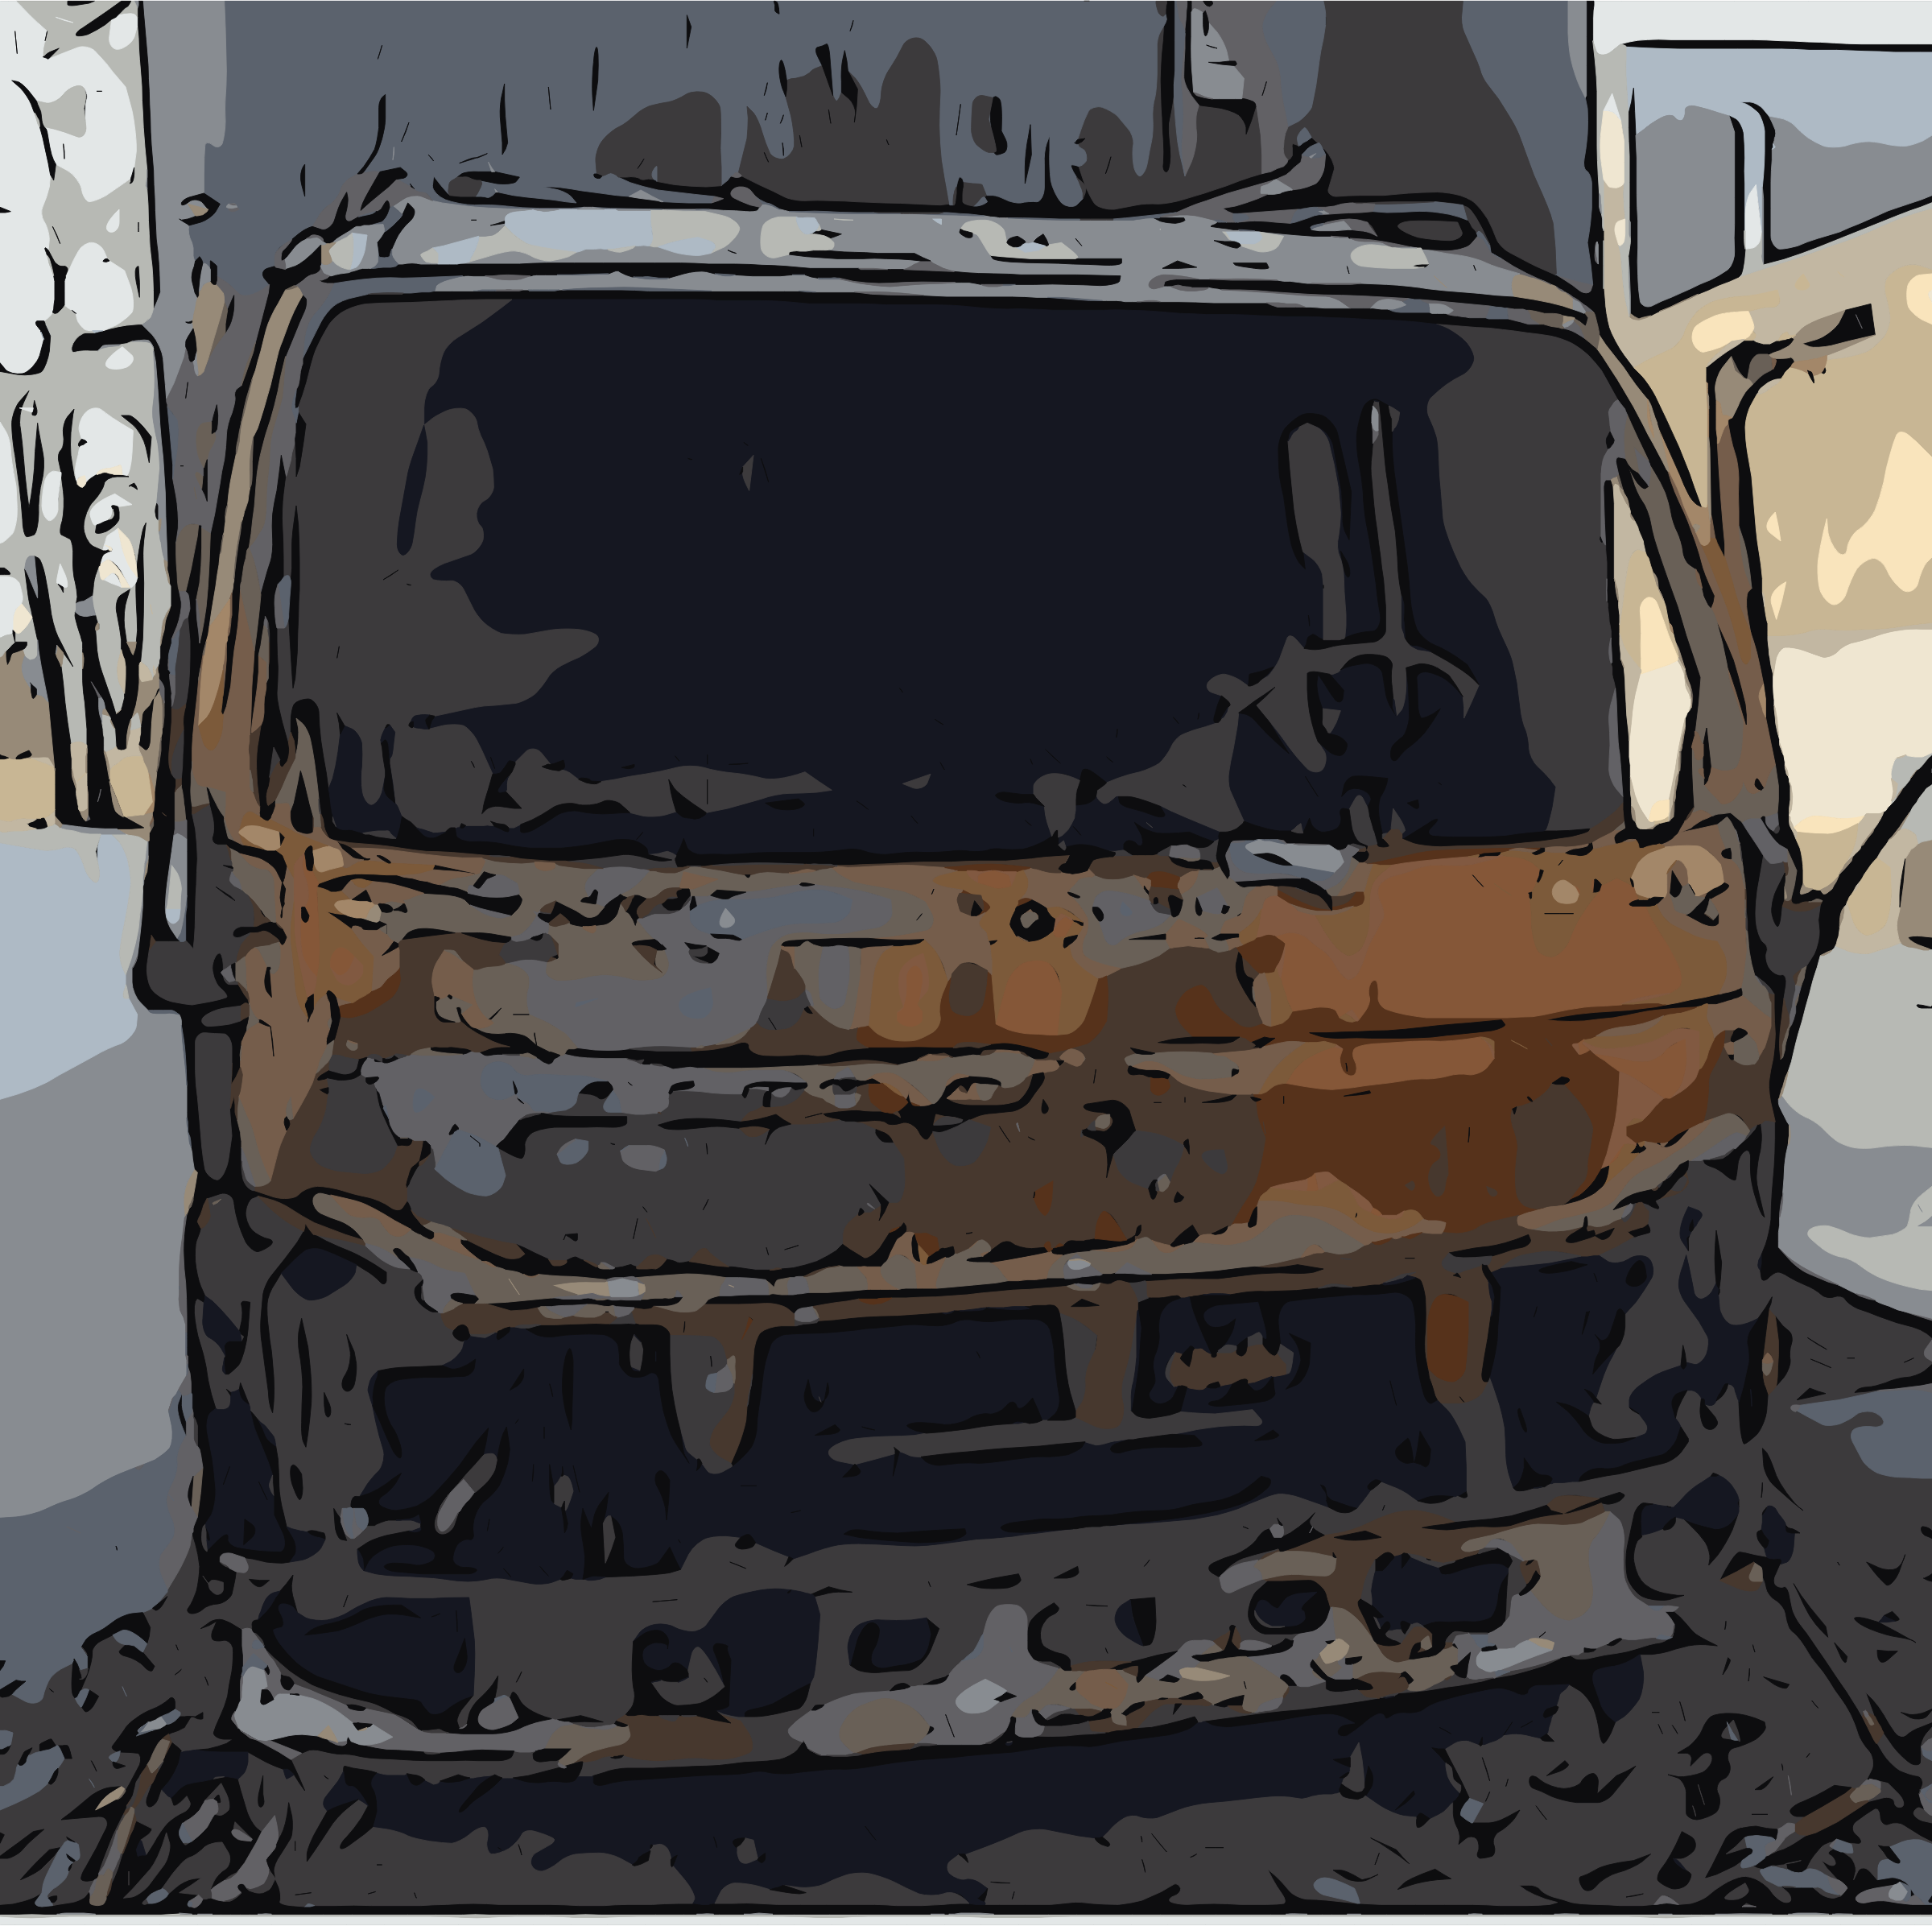 Burnt out truck by rejon